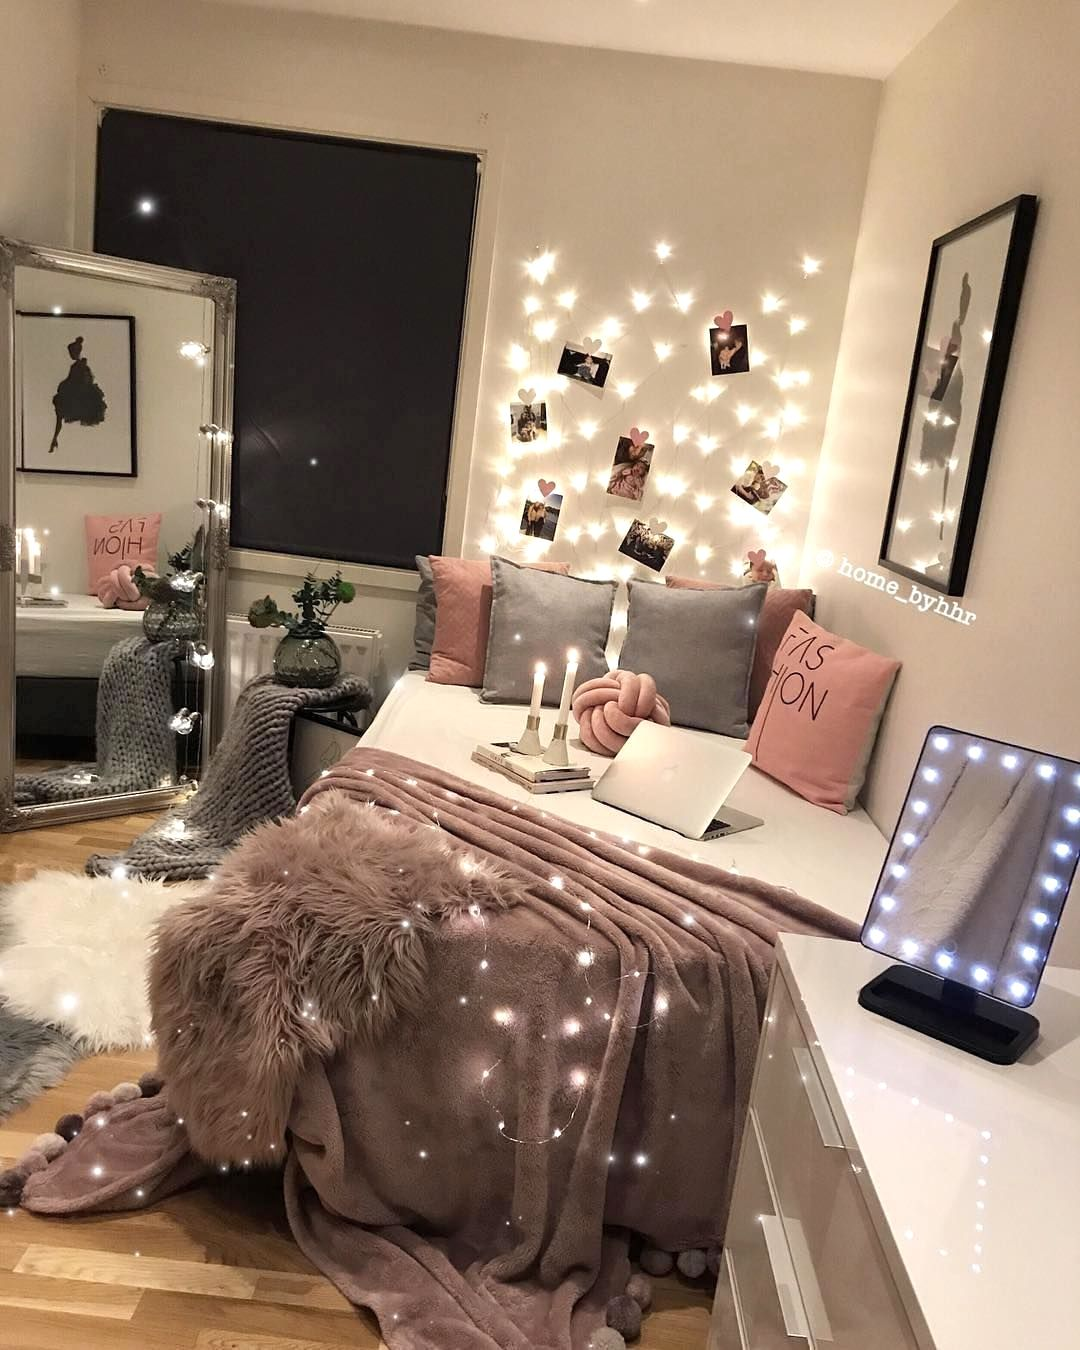 Teen bedroom ideas also best new room decor rose gold images in home rh pinterest